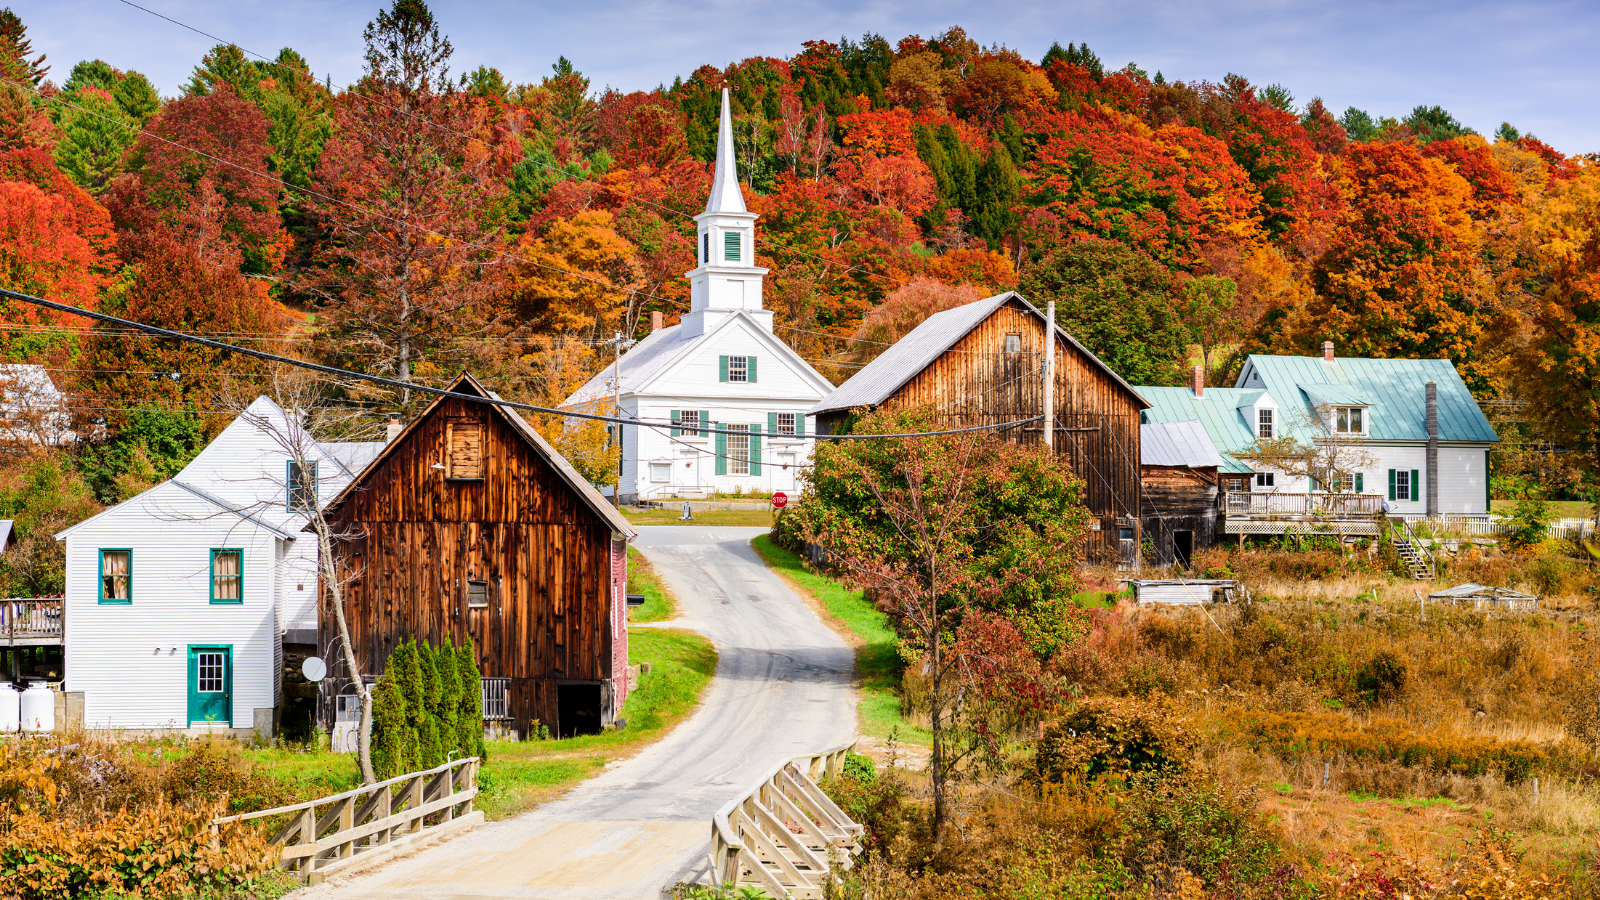 15 Effective Tips for Recruiting in Rural Areas